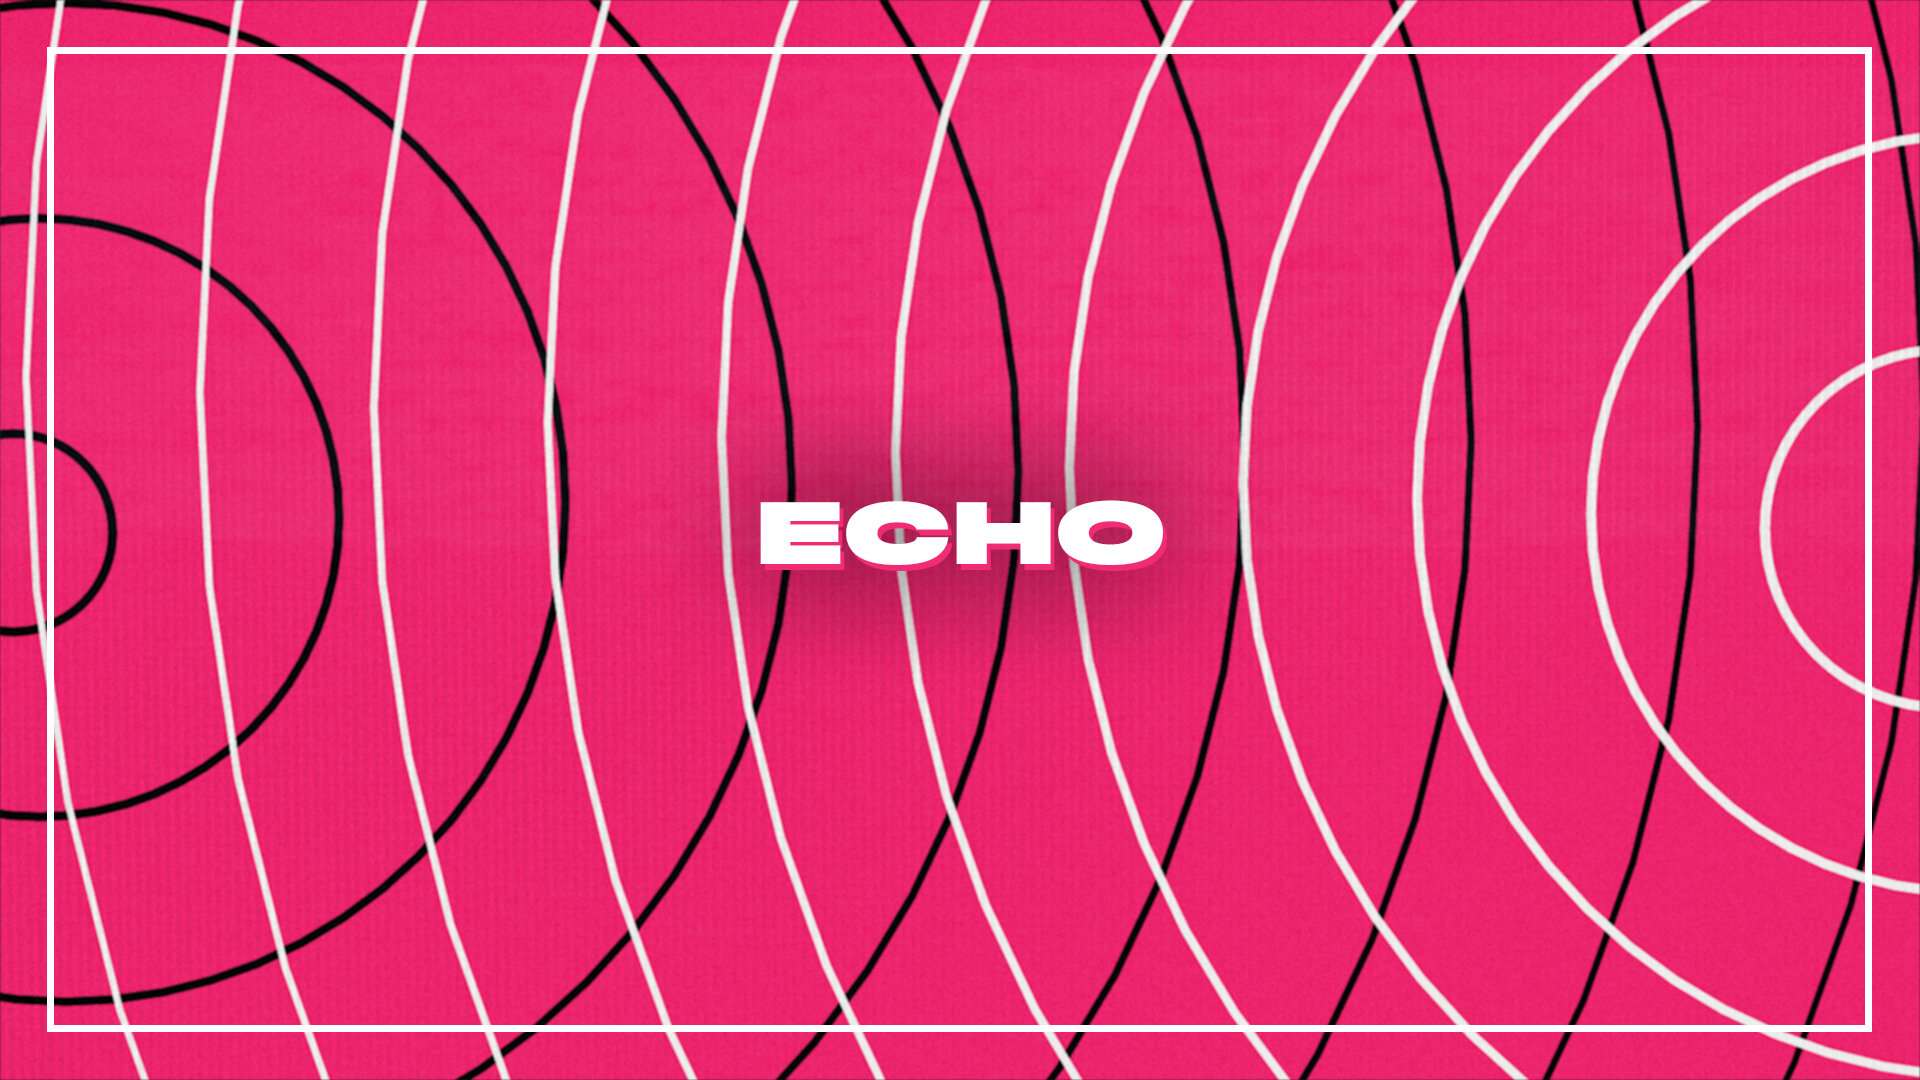 SeeingSounds_Echo_Poster2.jpg